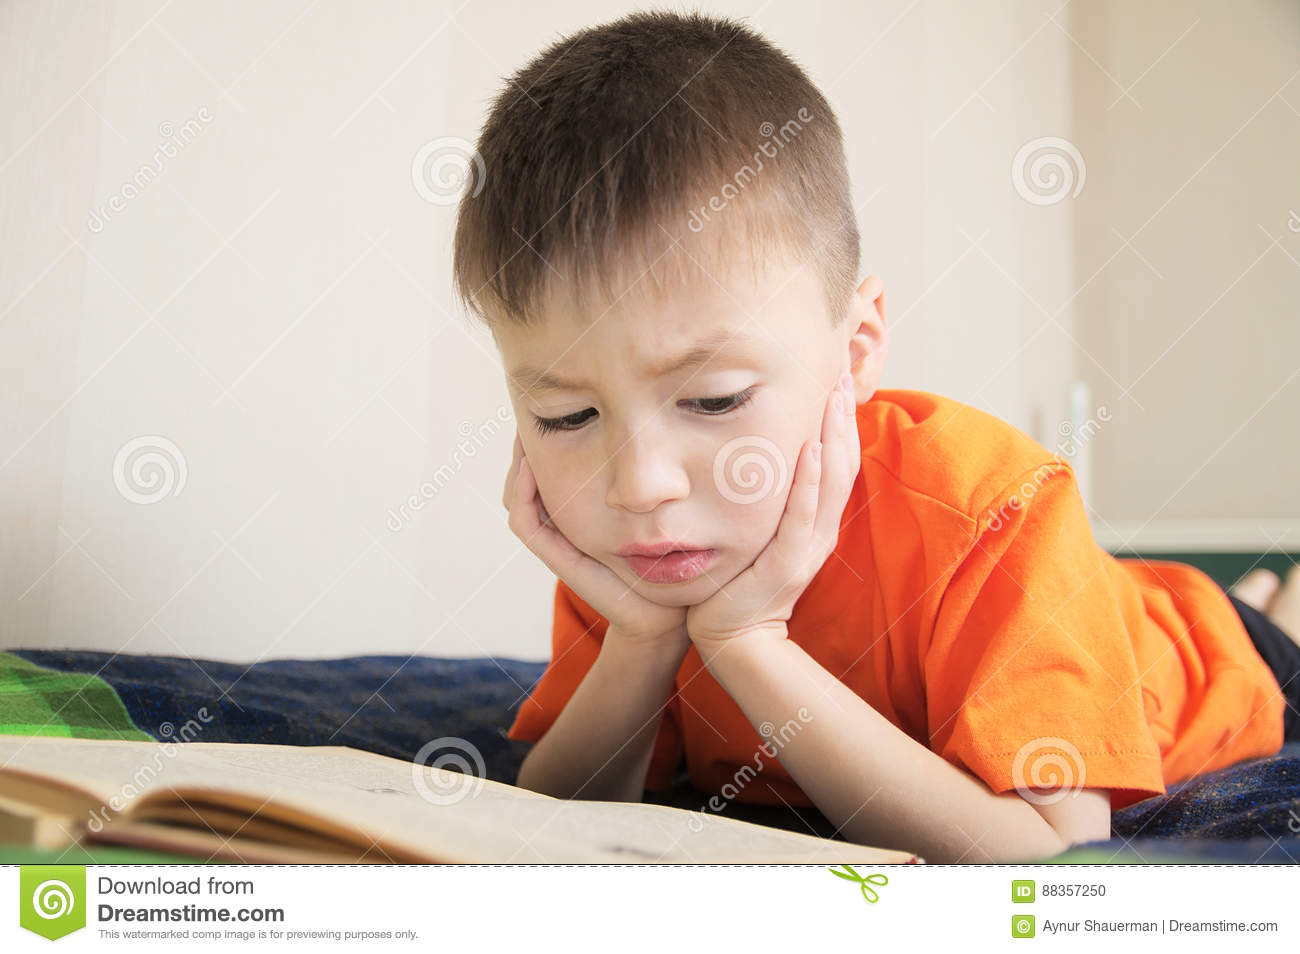 Children education, child reading book lying on bed, boy portrait with book, interesting storybook